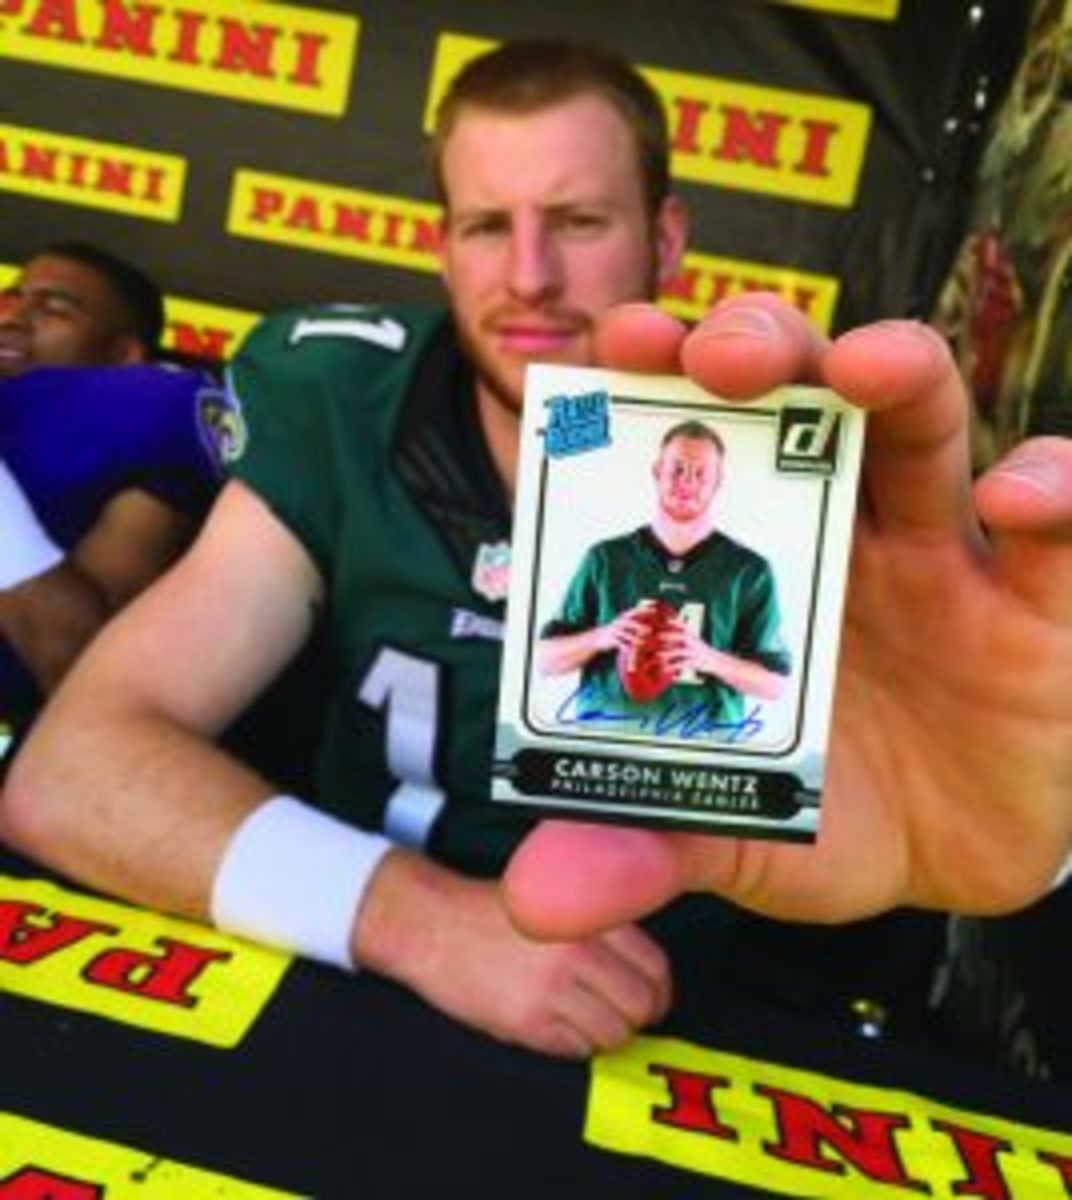 For football cards of the top two picks in the NFL Draft, look to Panini, which has the exclusive card license. Base cards will likely run under $10, with signed versions going into triple digits.